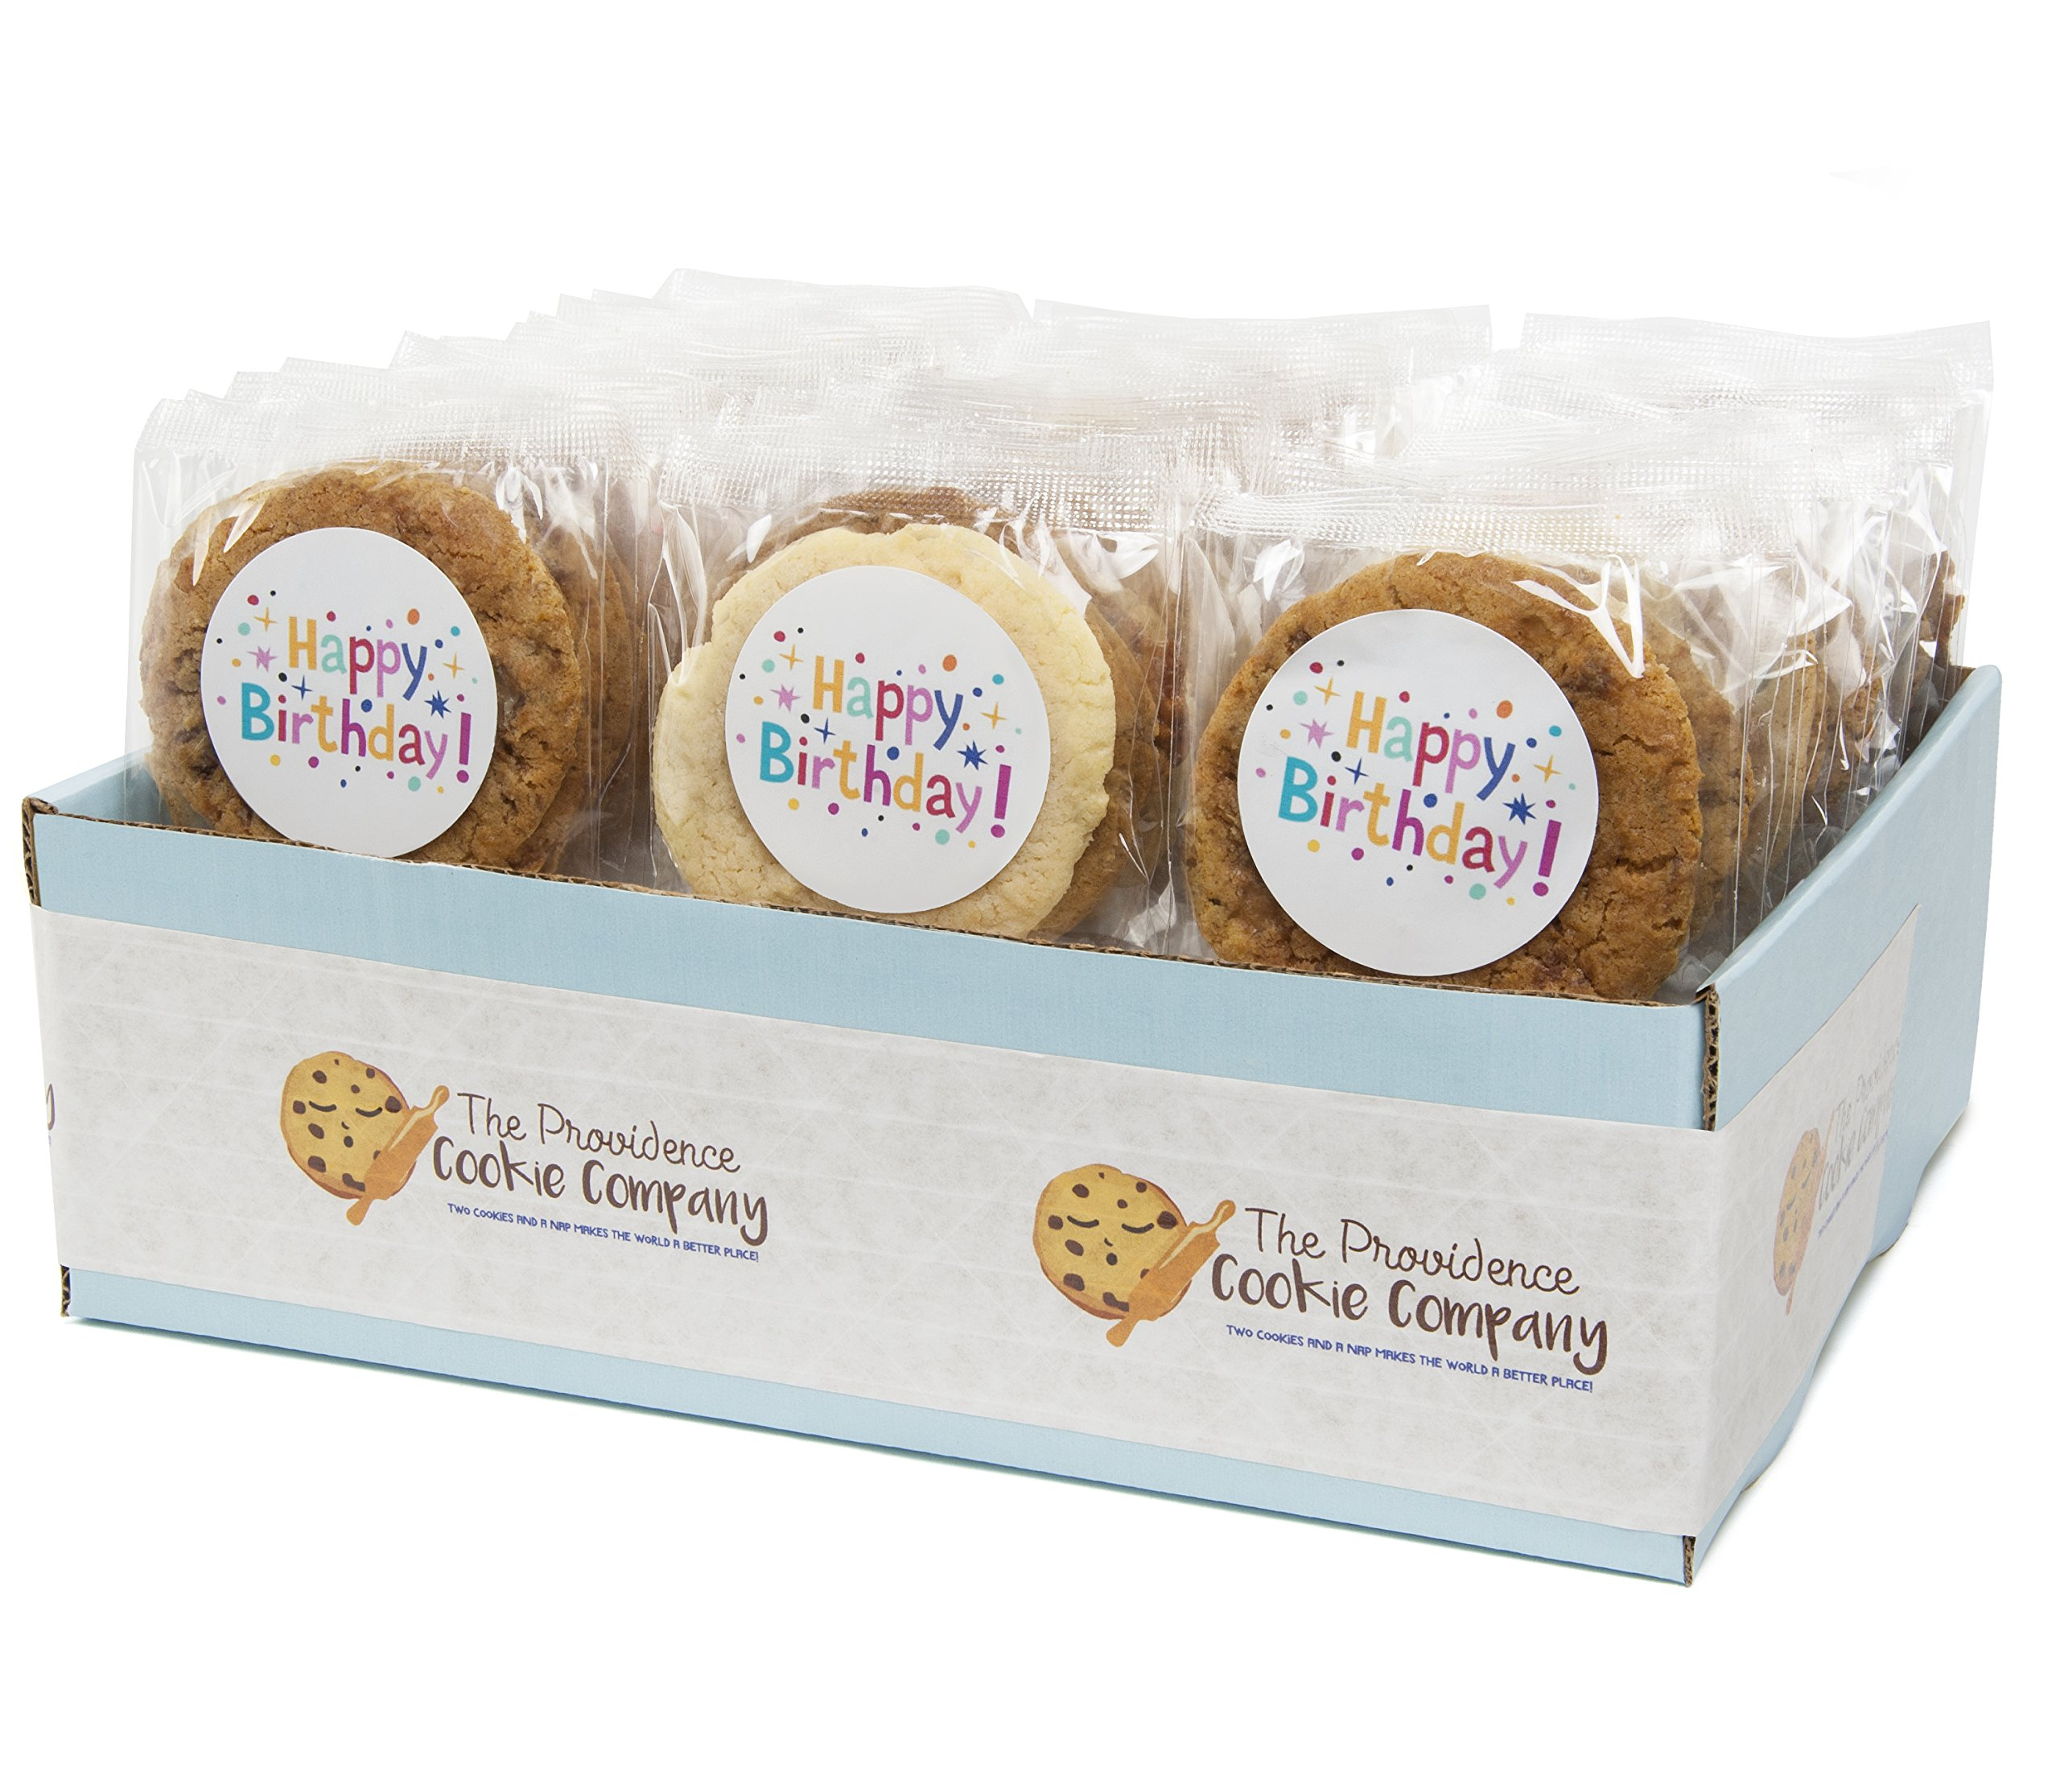 The Providence Cookie Company HAPPY BIRTHDAY GOURMET COOKIE GIFT choose 1, 2, 3 or 4 Dozen (4 Dozen) by The Providence Cookie Company llc (Image #1)